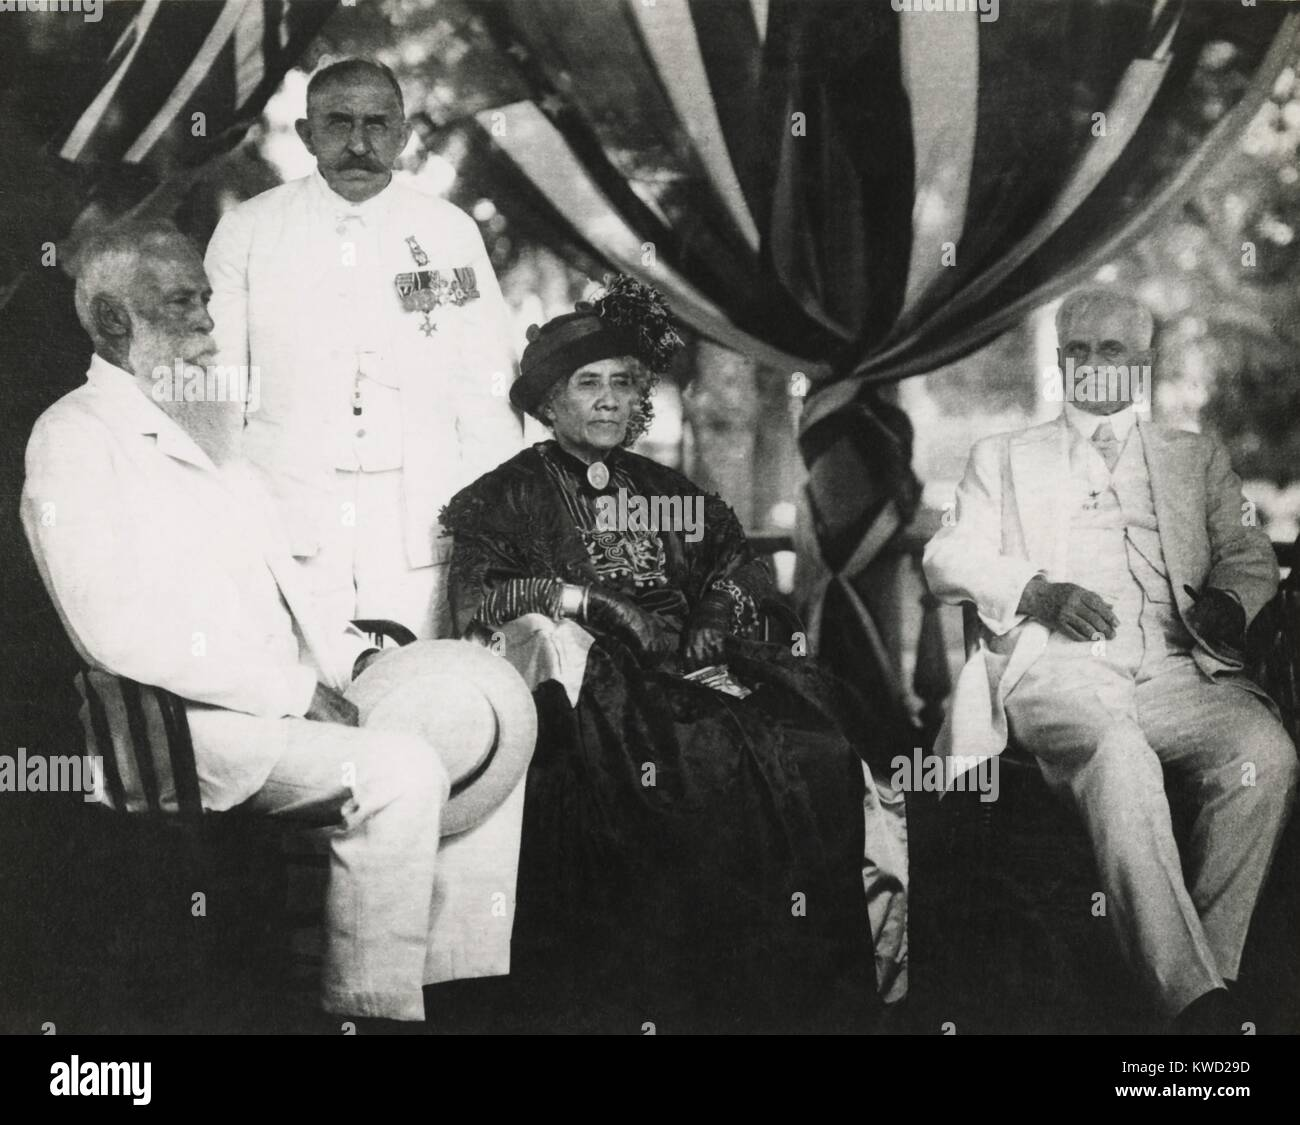 Ex-Queen Liliuokalani on her 70th birthday, seated with Sanford Dole (left) in 1914. At right is Lucius Eugene Pinkham, Stock Photo